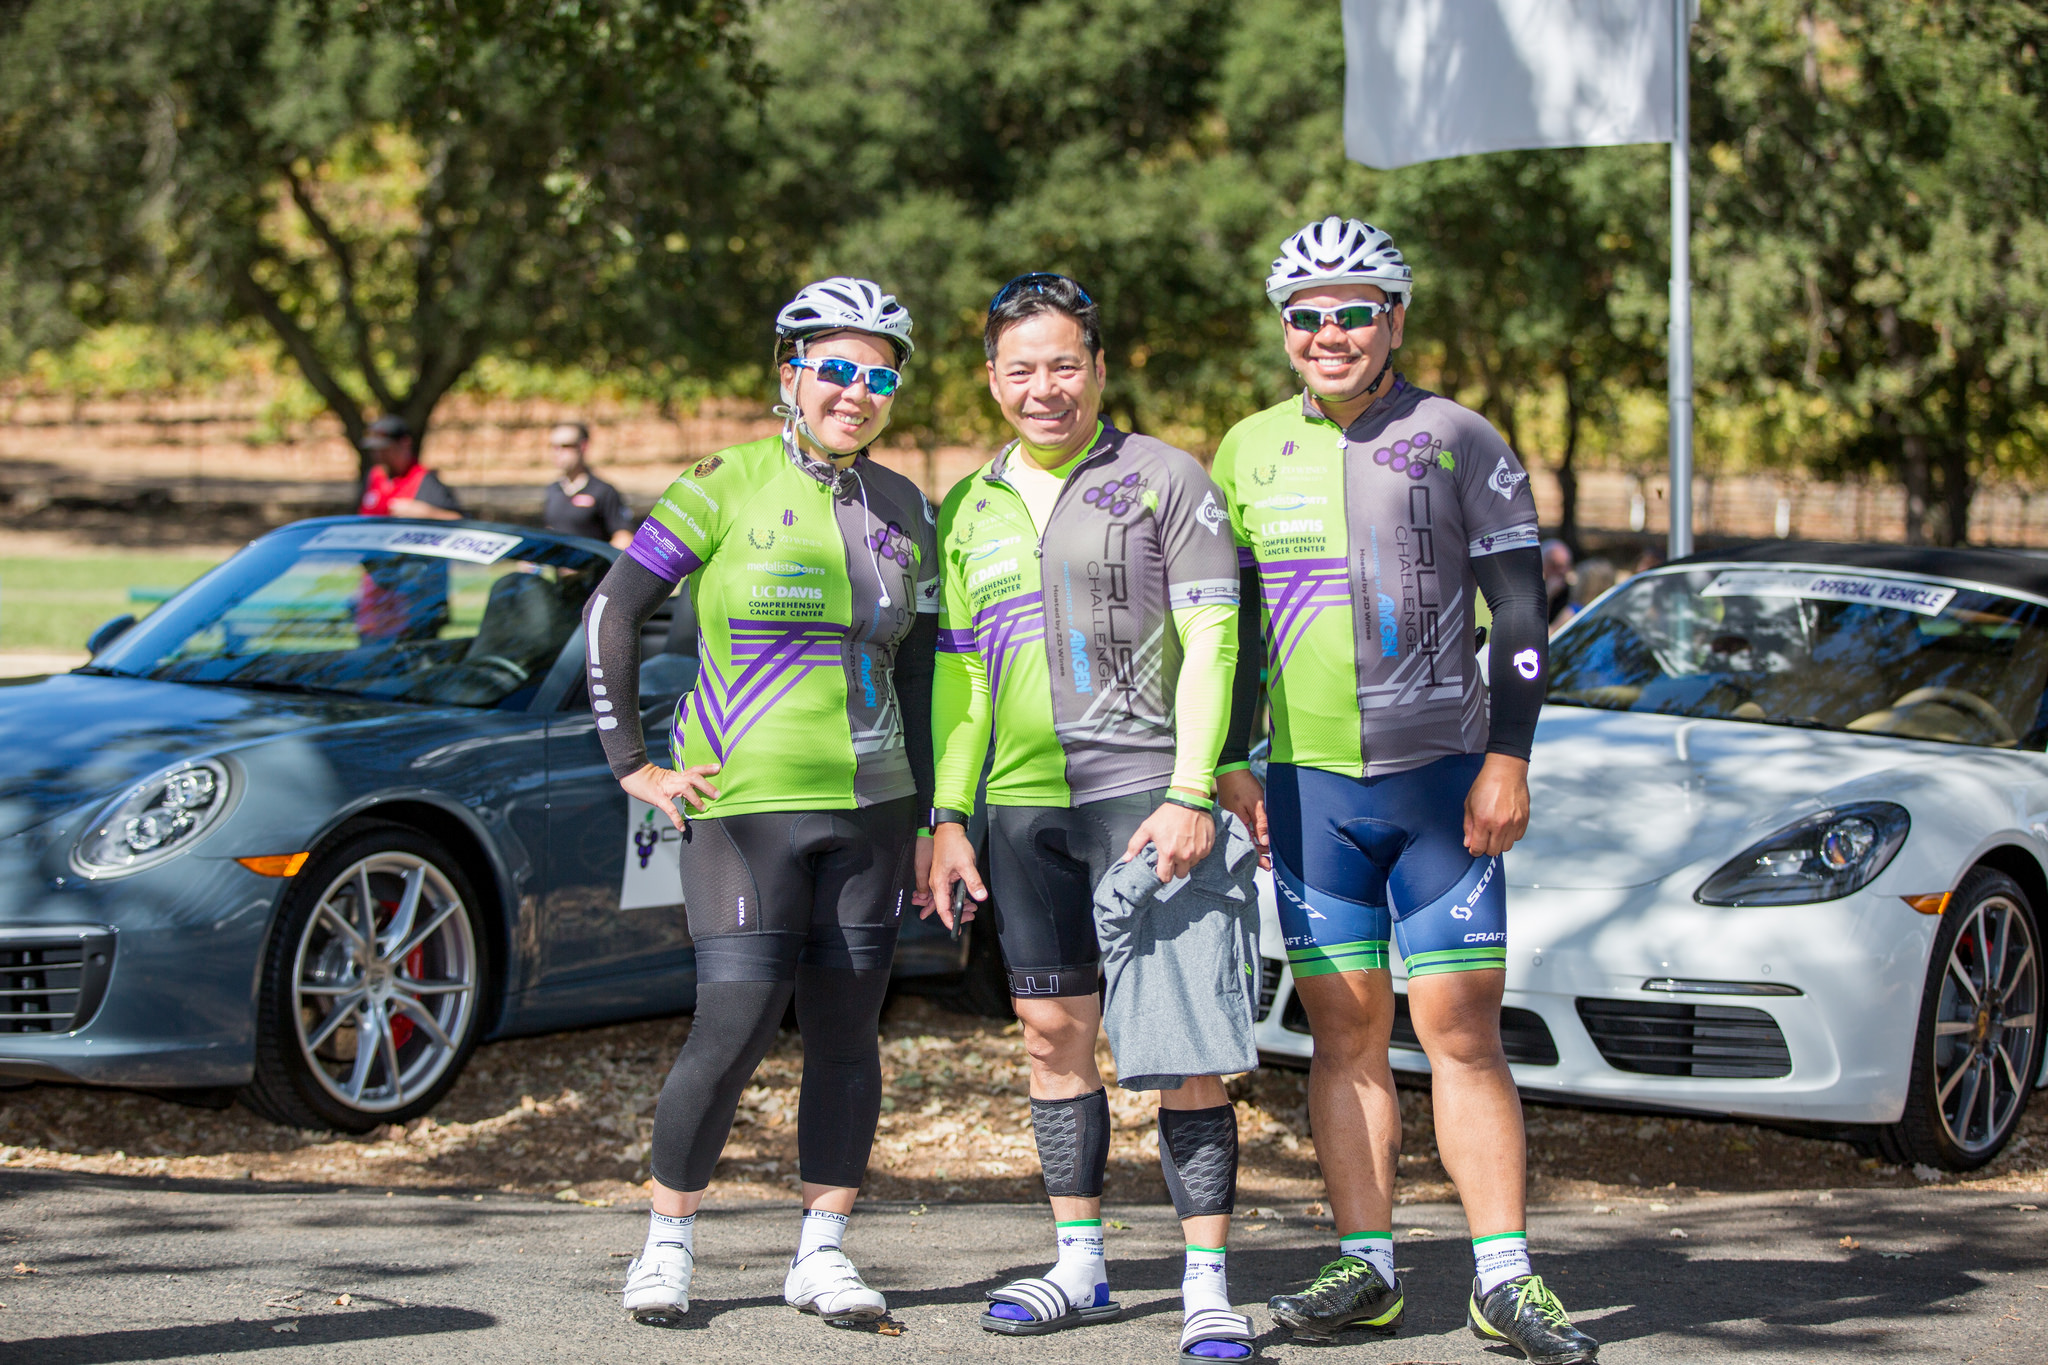 All Smiles after miles of vineyard-lined roads... - Private Ride at the Crush Challenge